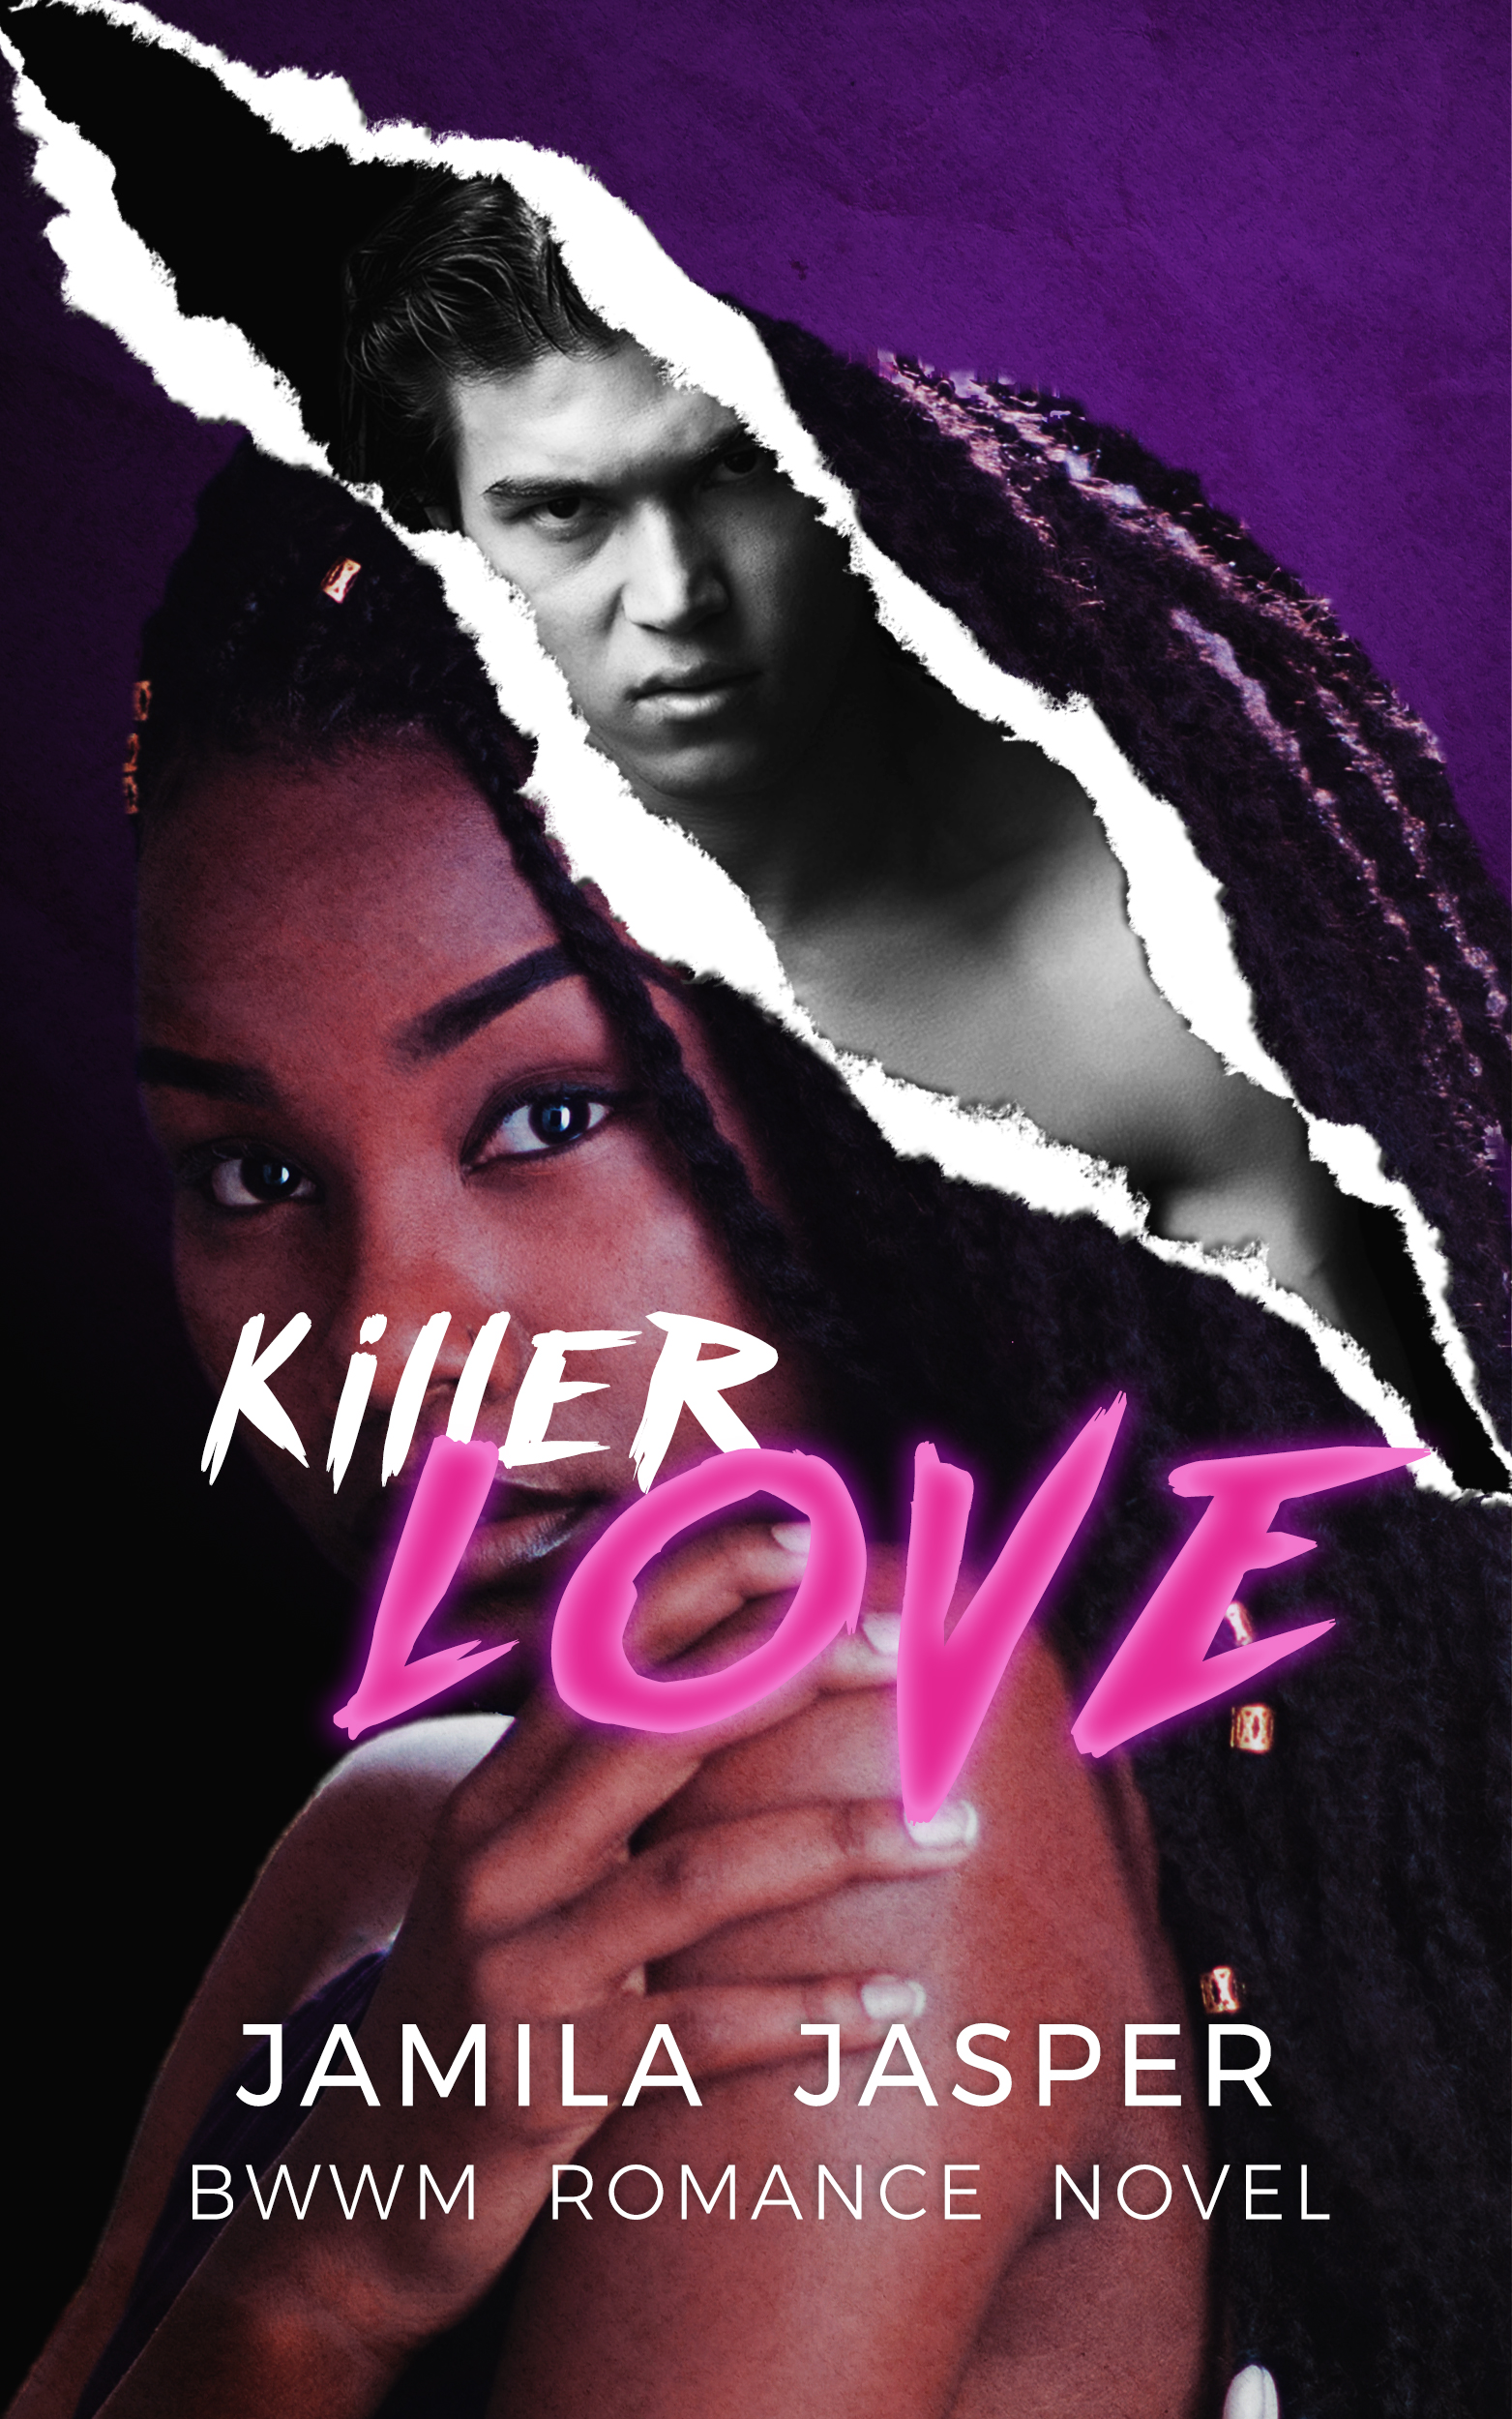 BWWM Books Romance Novel Excerpts Killer Love Jamila Jasper BWWM Books